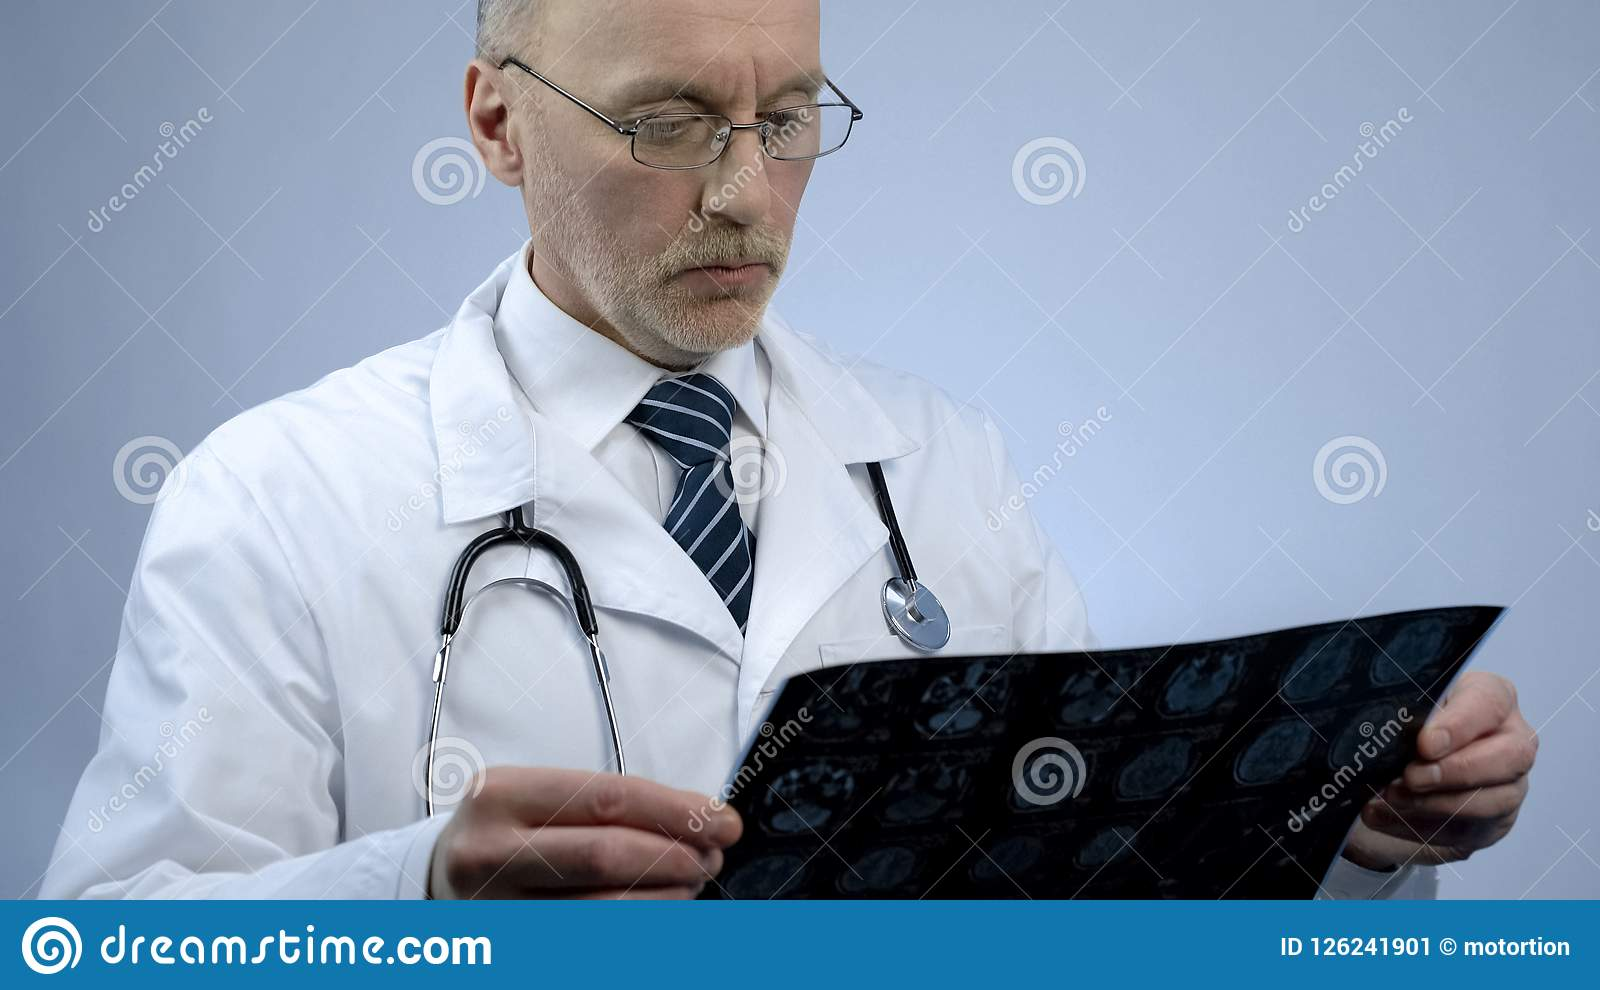 Experienced male therapist looking at patients brain scan, checking MRI results